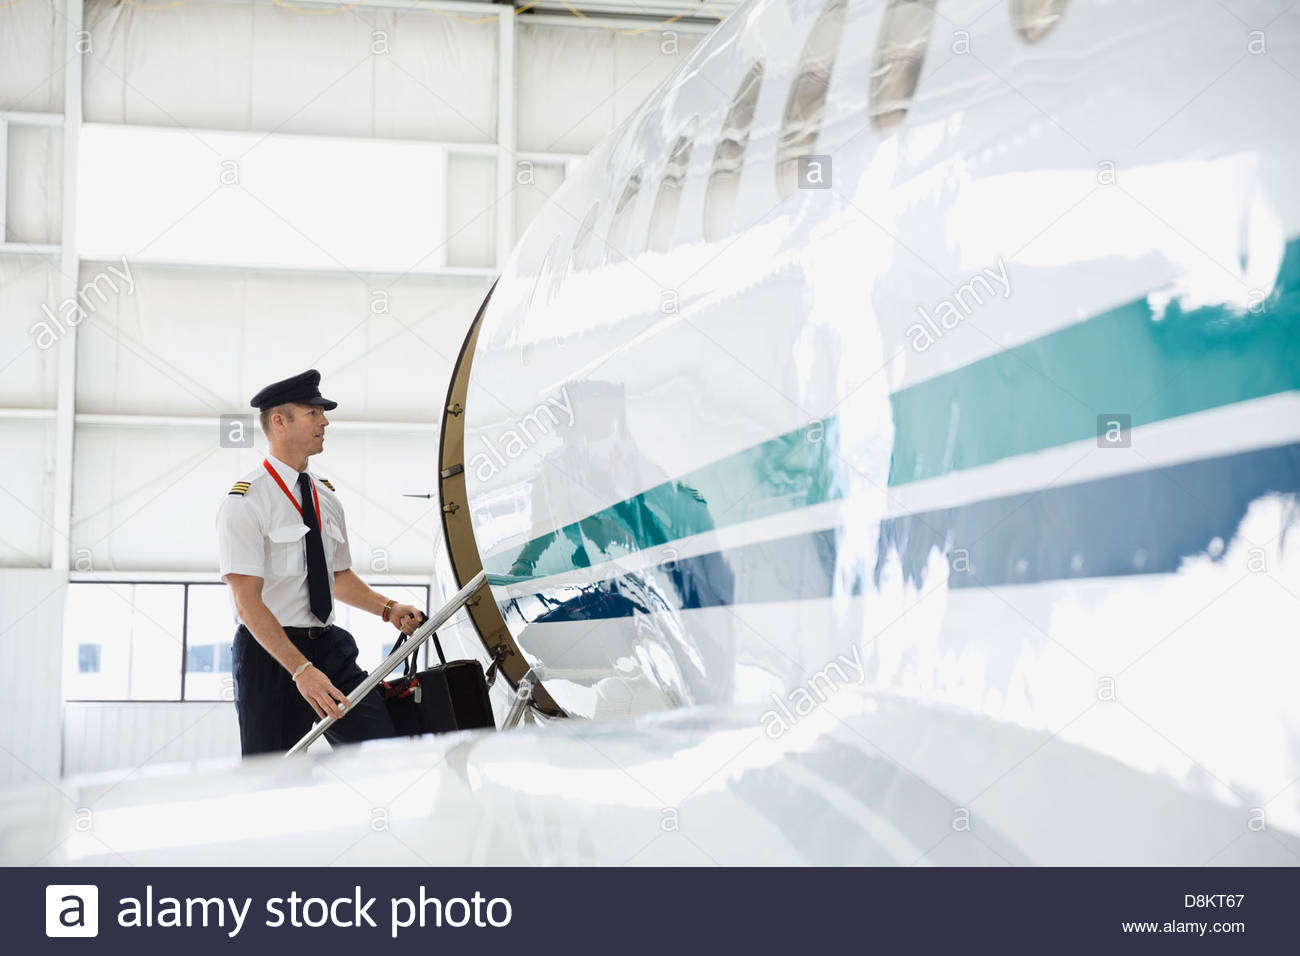 Male pilot boarding plane with luggage in hangar - Stock Image